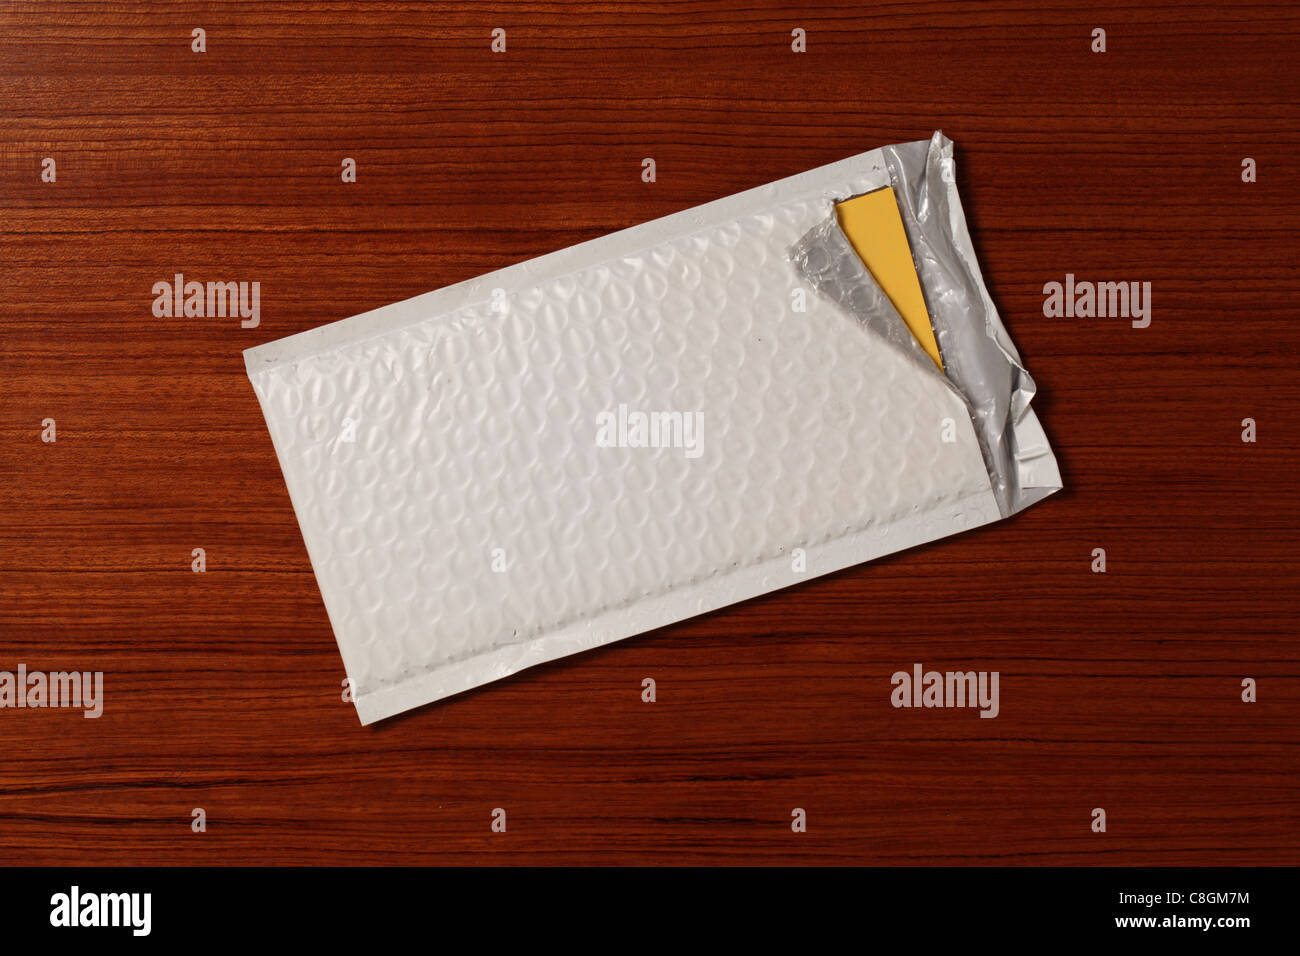 A white padded mailing postal envelope slightly torn open on the end exposing a yellow document. Wooden desk surface. - Stock Image